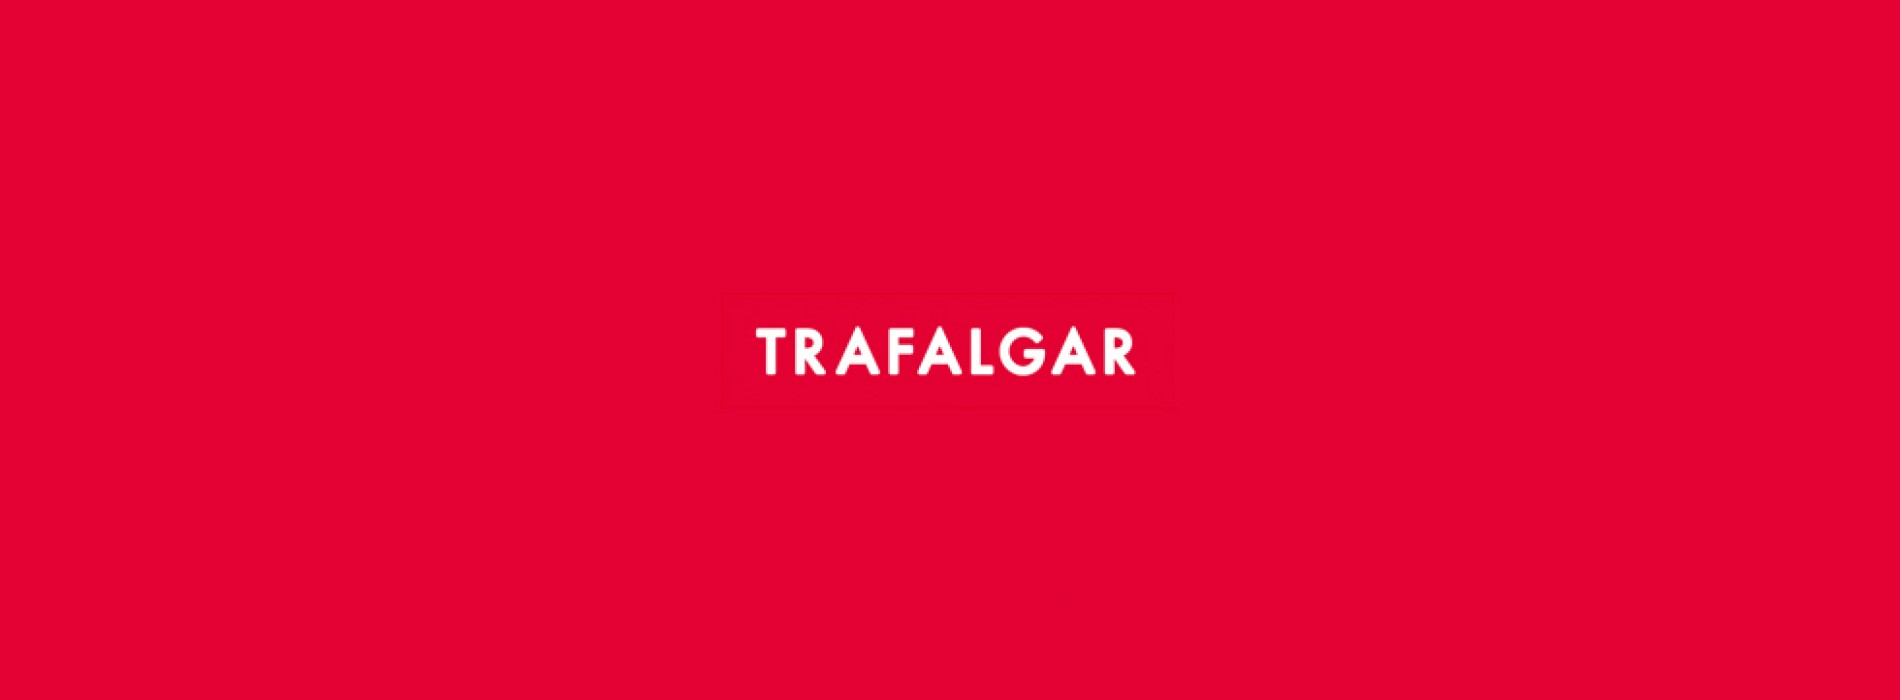 Trafalgar reveals simply the best way for agents to learn, earn and travel more